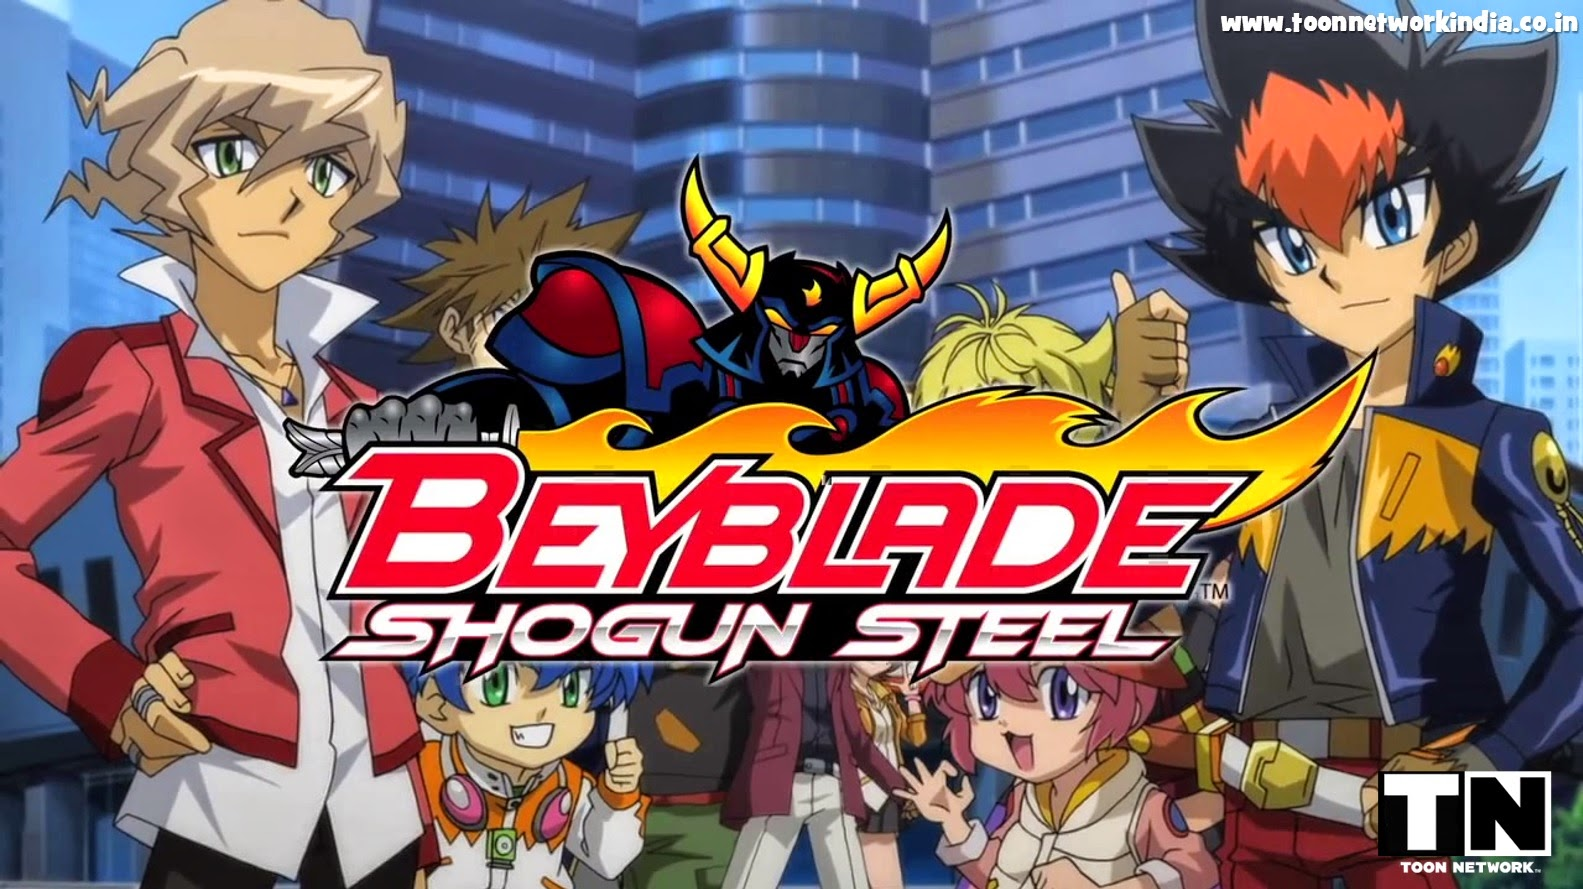 Beyblade cartoon in hindi download